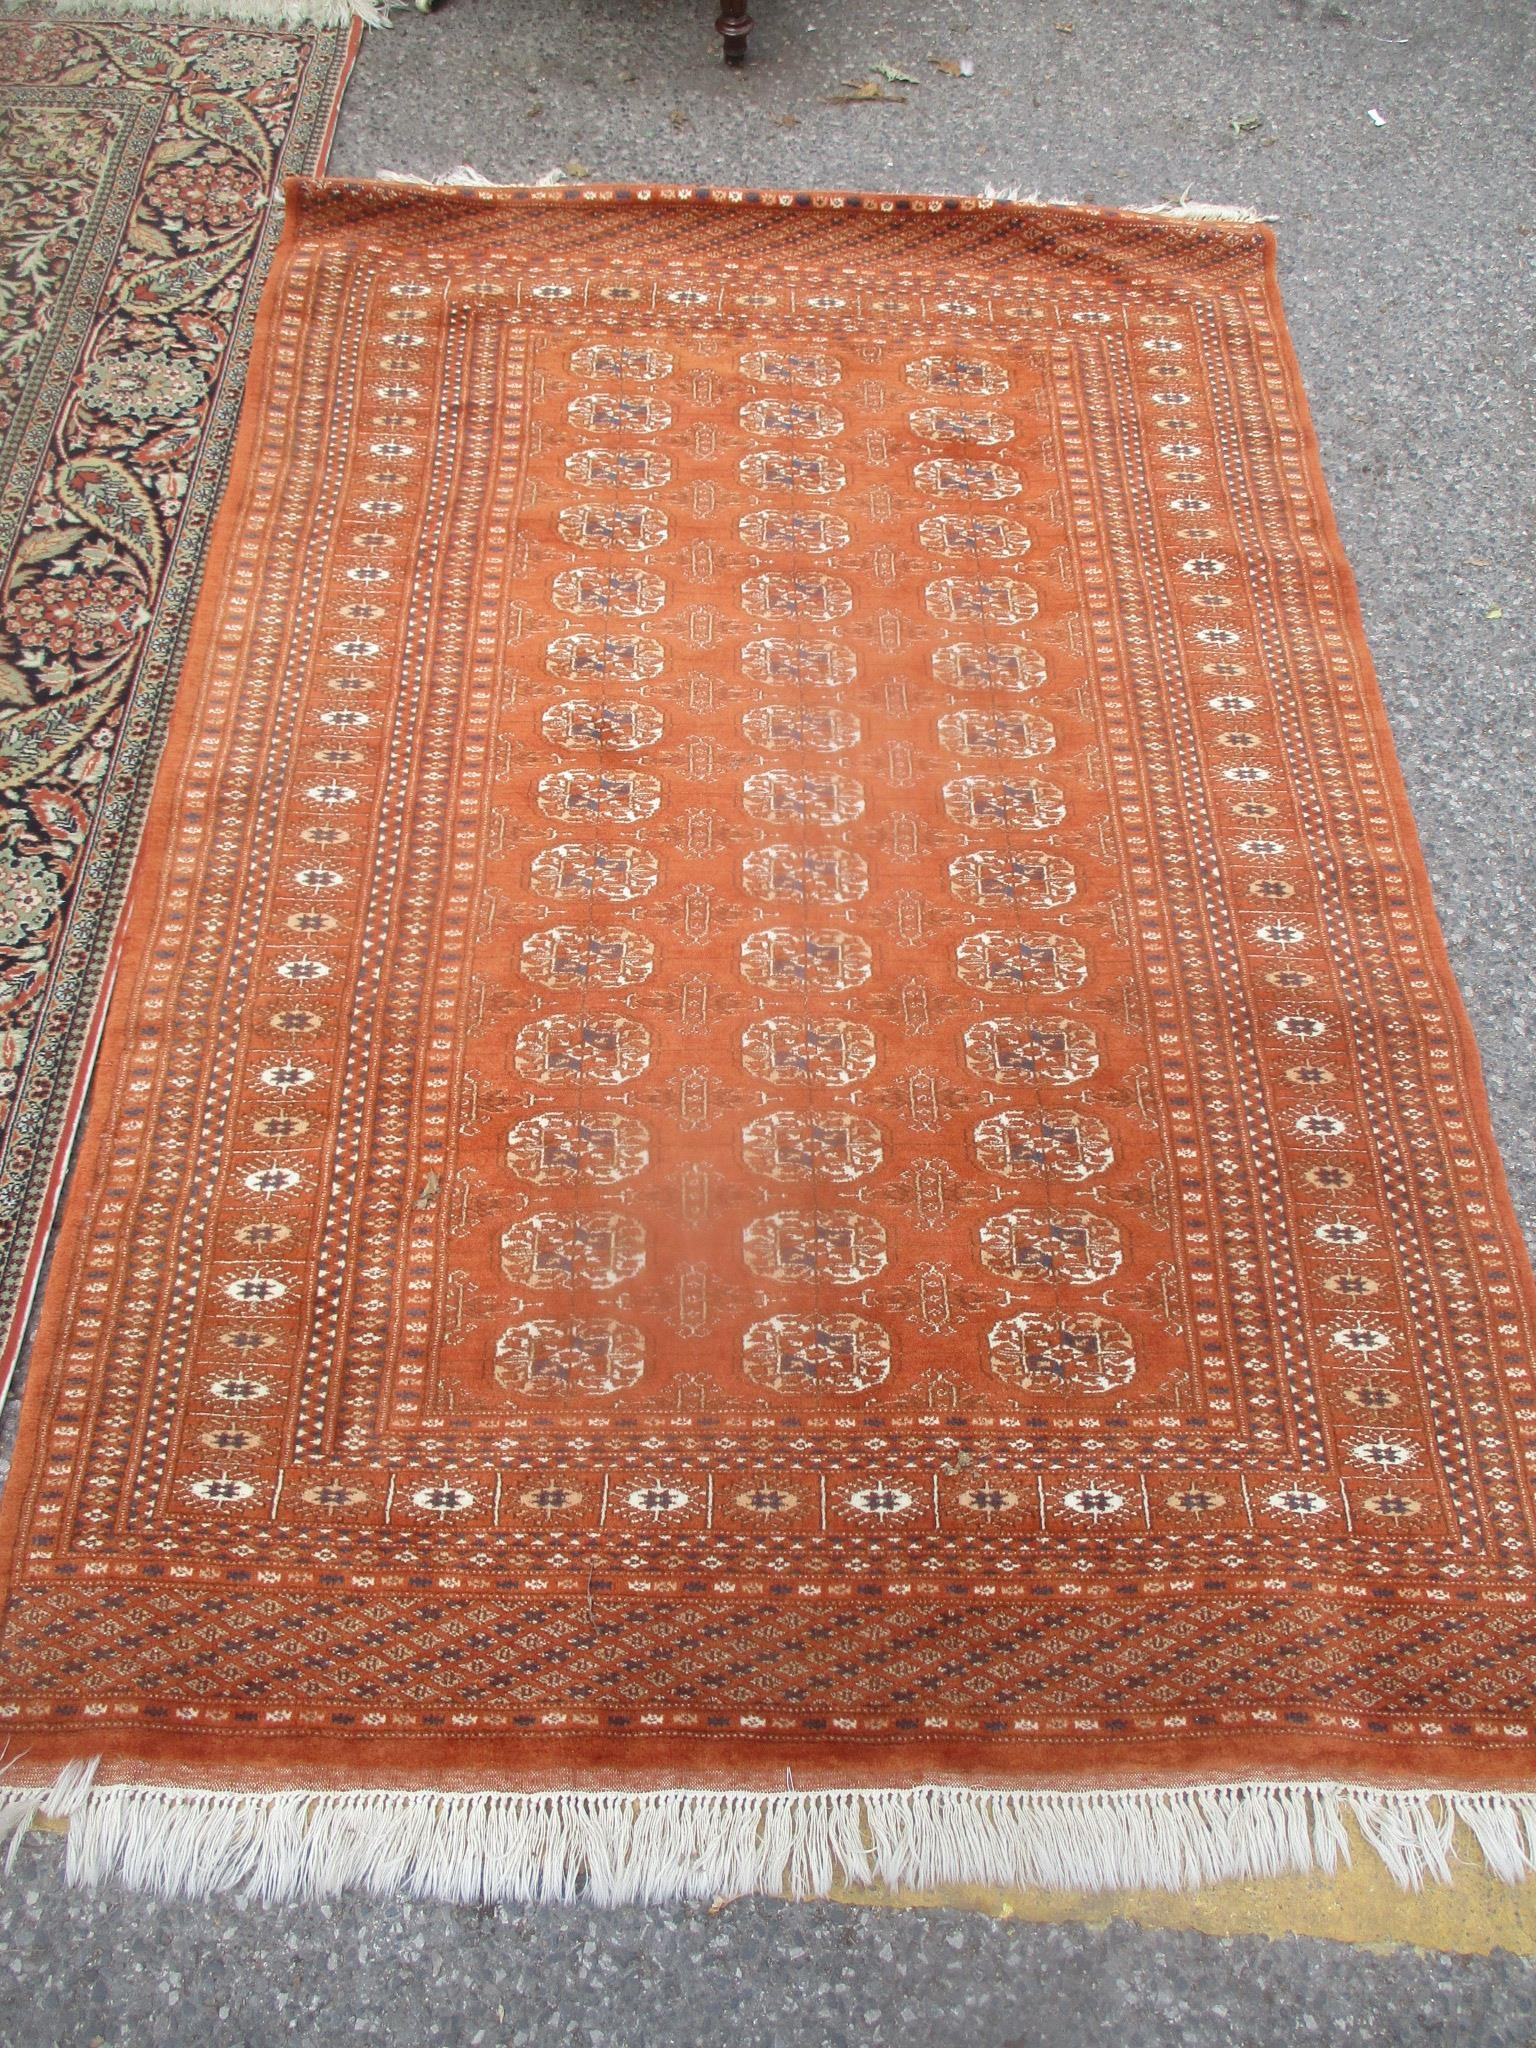 Two Turkish rugs to include a red ground elephant foot motif rug, 190 x 127cm and a floral rug - Image 2 of 3